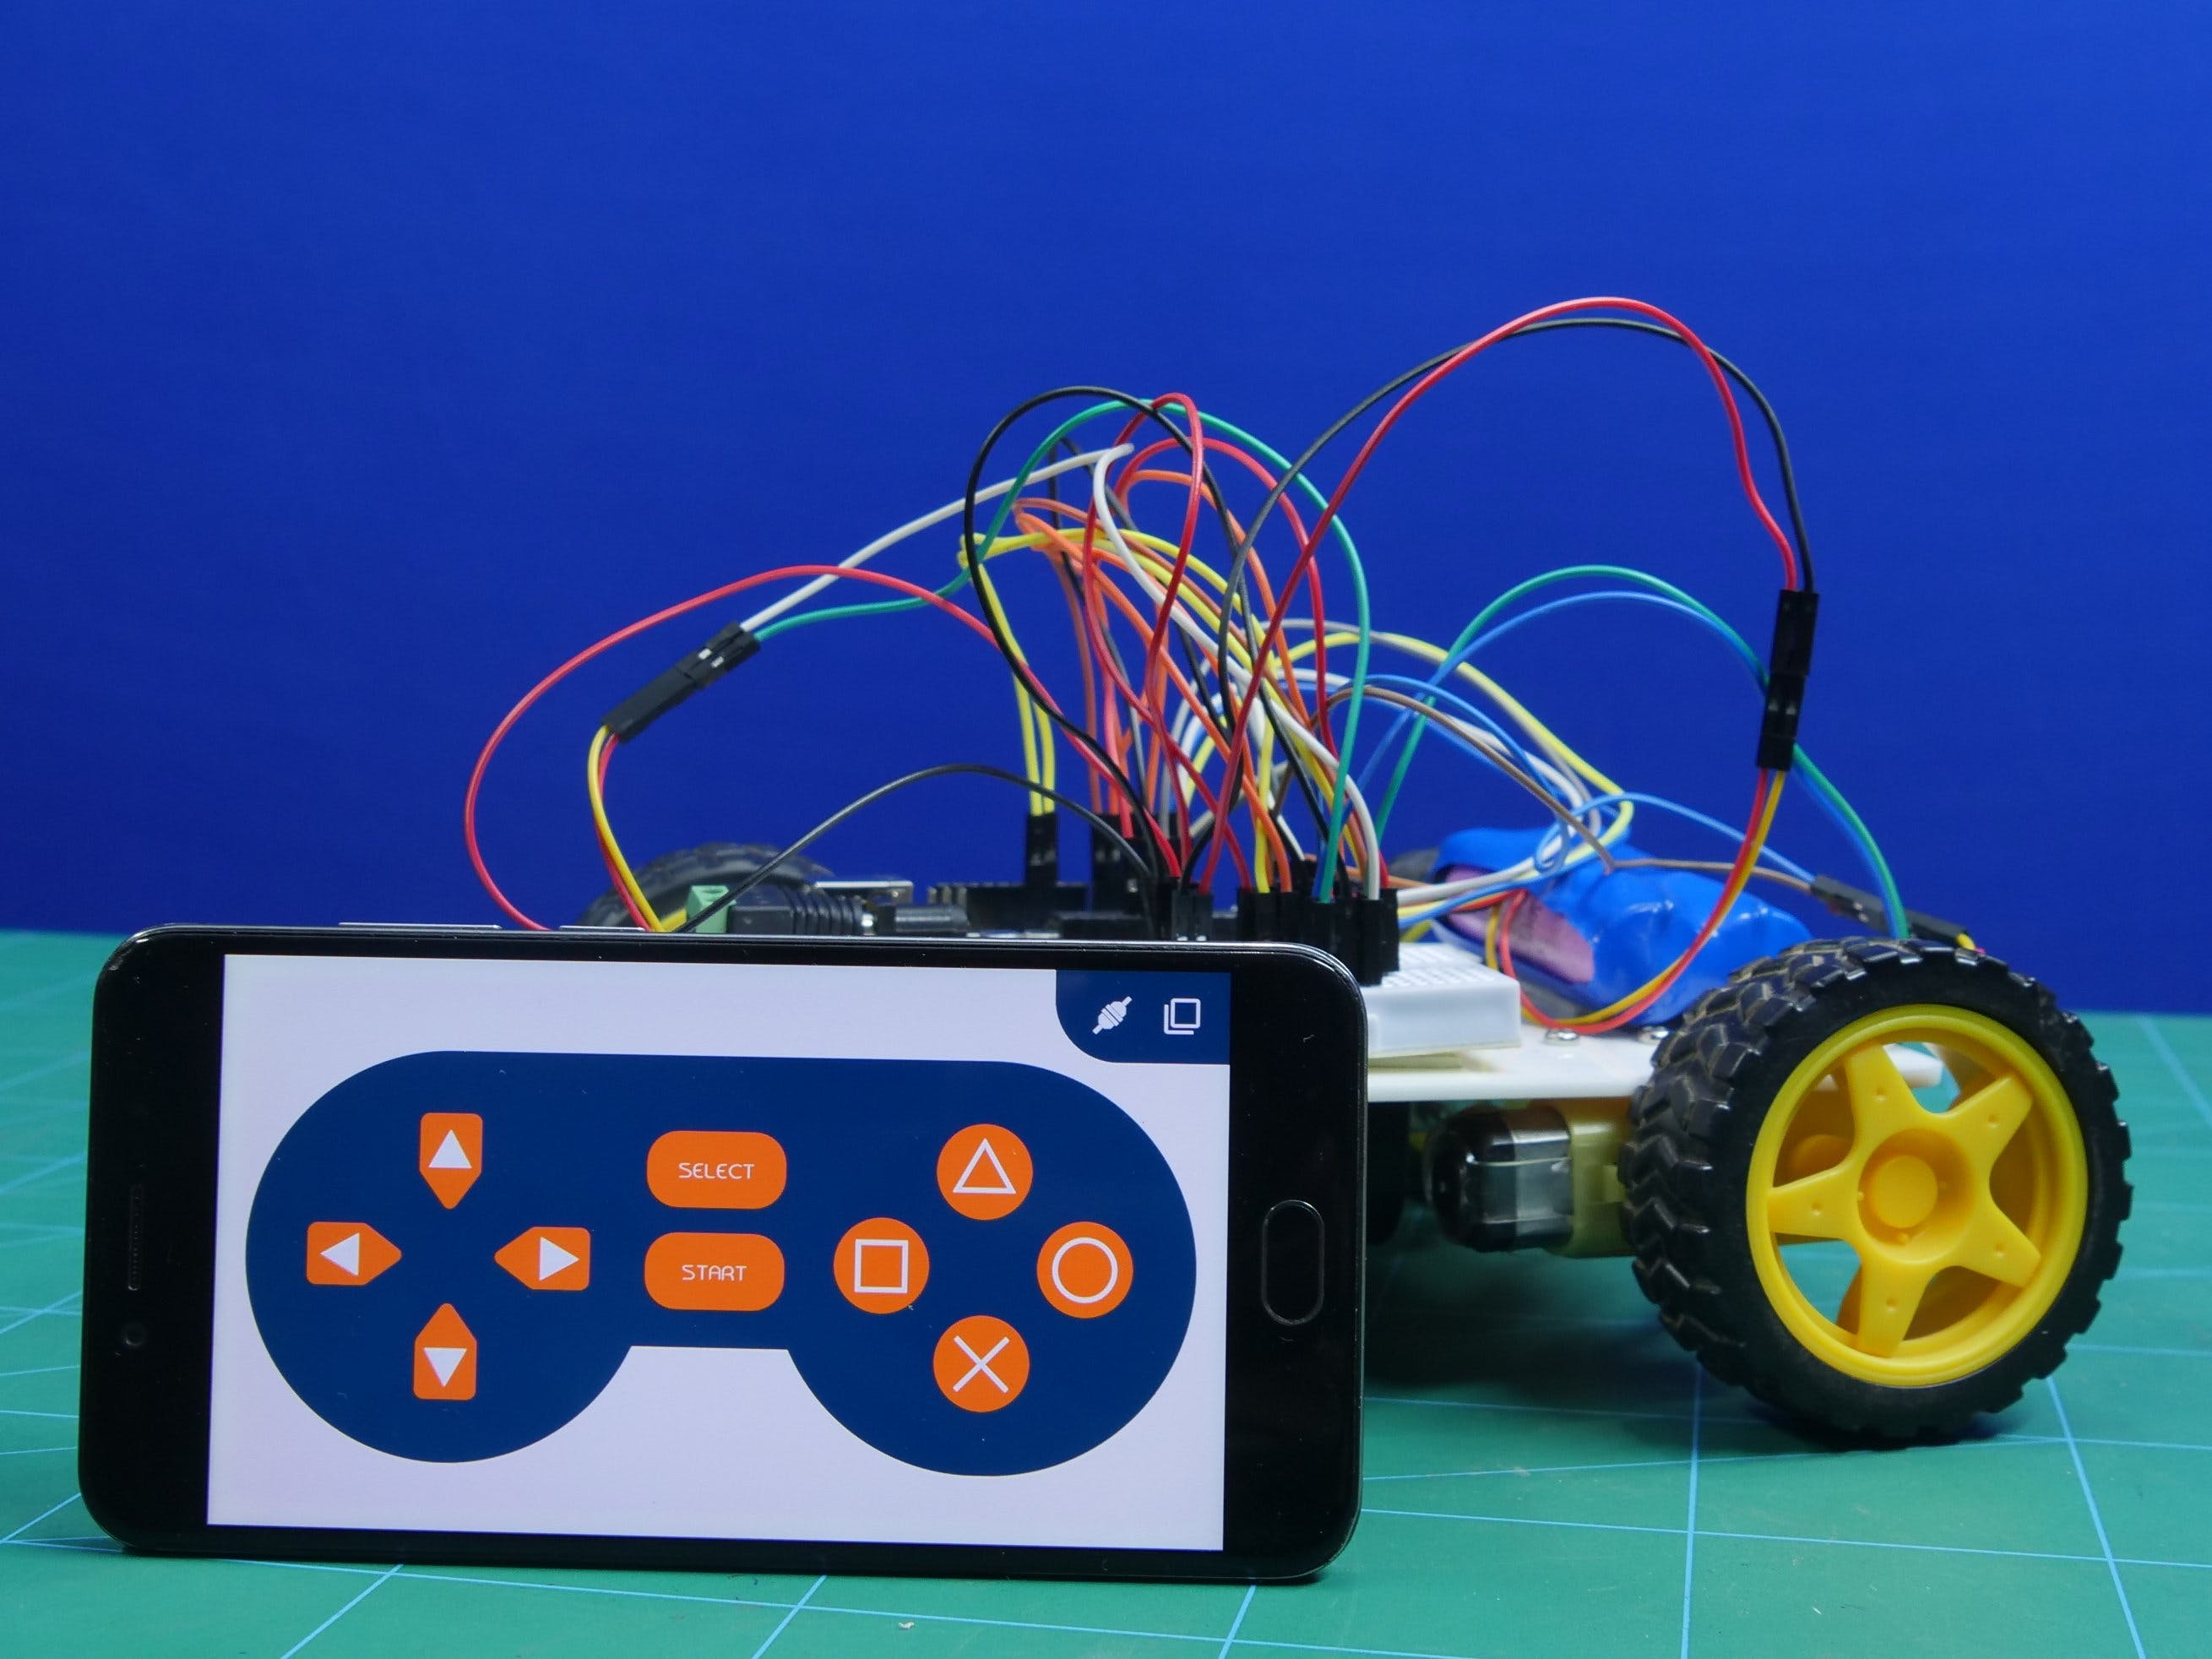 4-Wheel Robot Made With Arduino Controlled Using Dabble